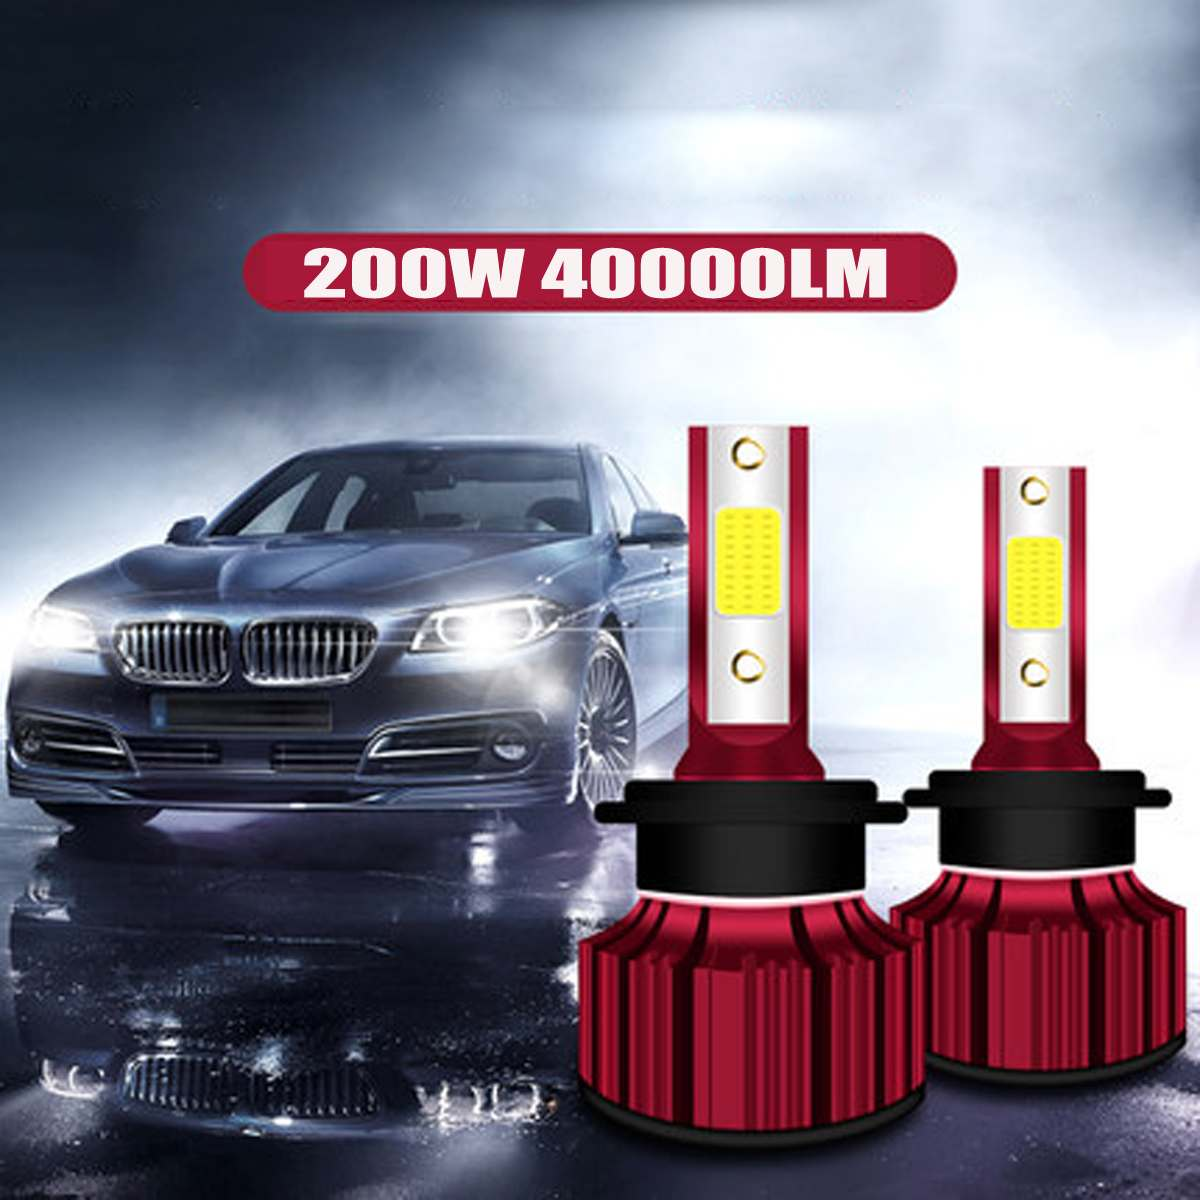 2x 40000LM Car LED Headlight Bubls Mini Headlight Kit For High Power Bulb Fog Light 6000K White H7 H8 H9 H11 H4 9003 HB4